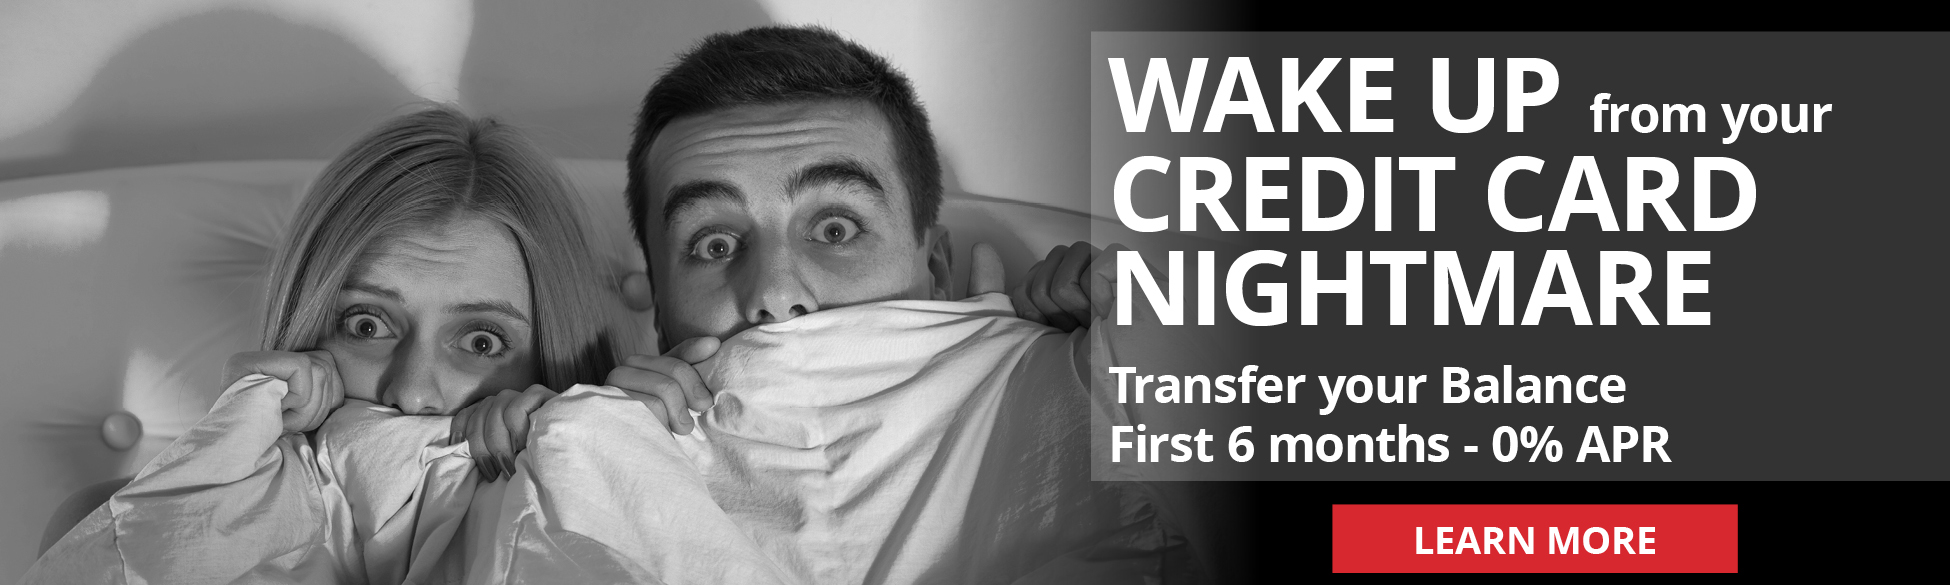 WAKE UP from your CREDIT CARD NIGHTMARE Transfer your Balance First 6 months - 0% APR*